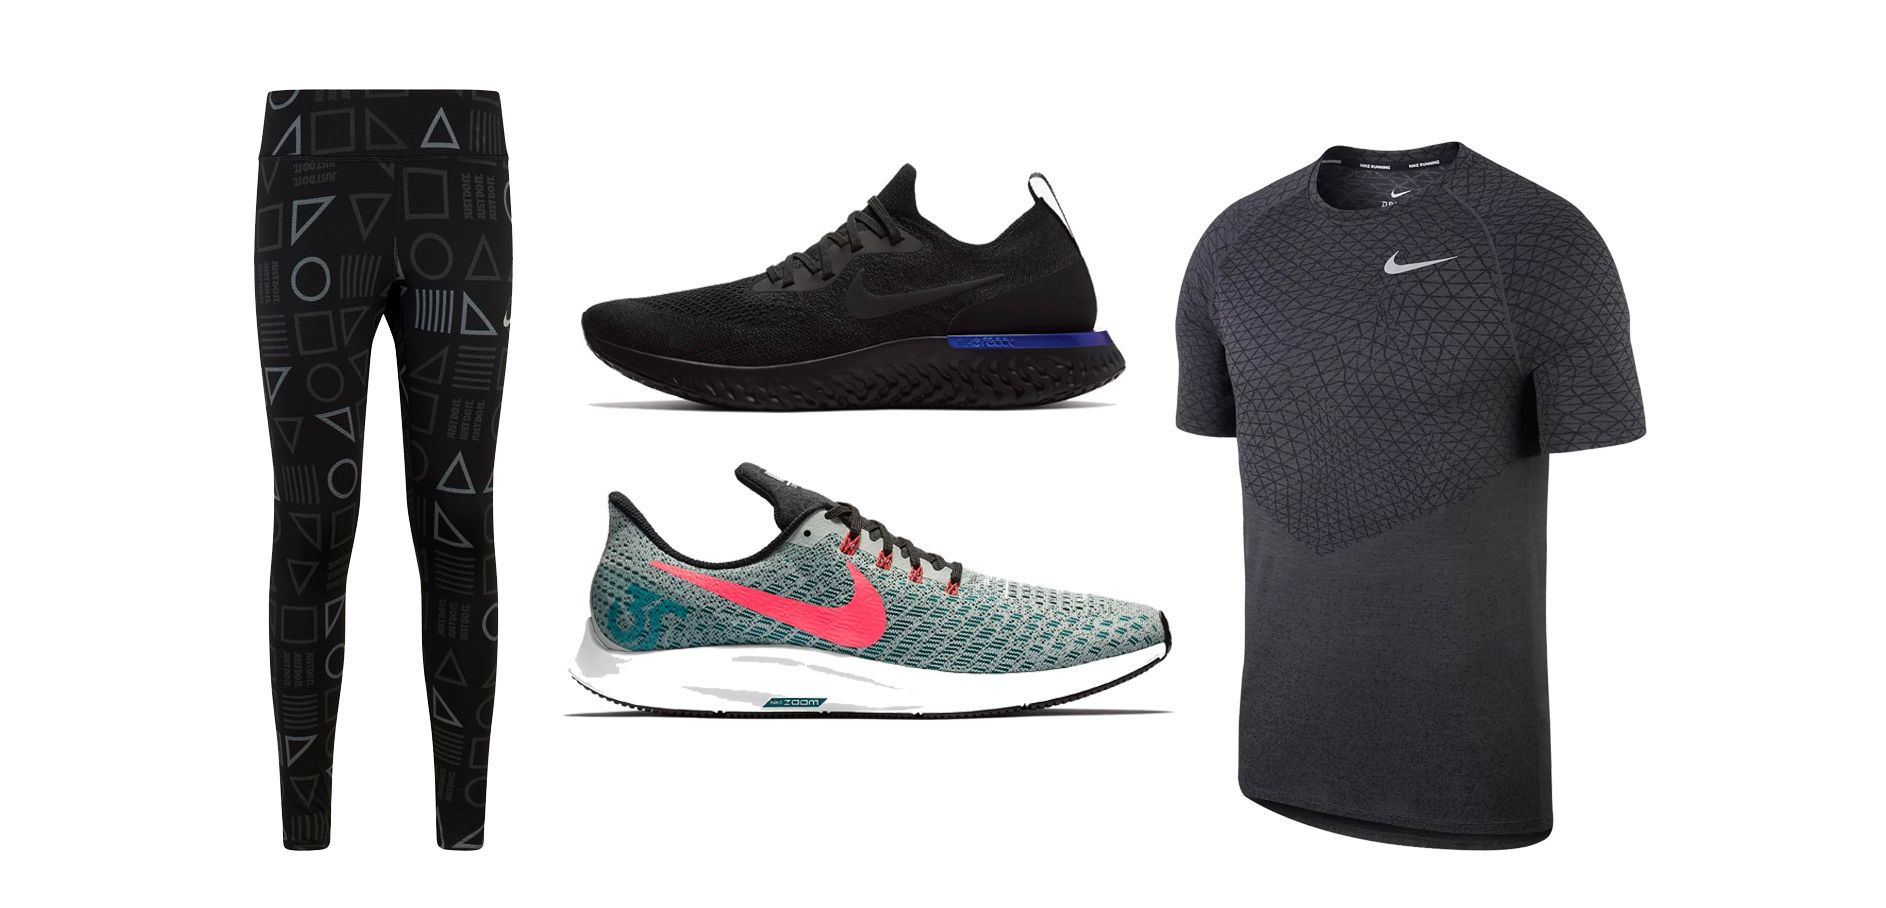 b0604e7f63b3c You can save 30% on this Nike running gear today